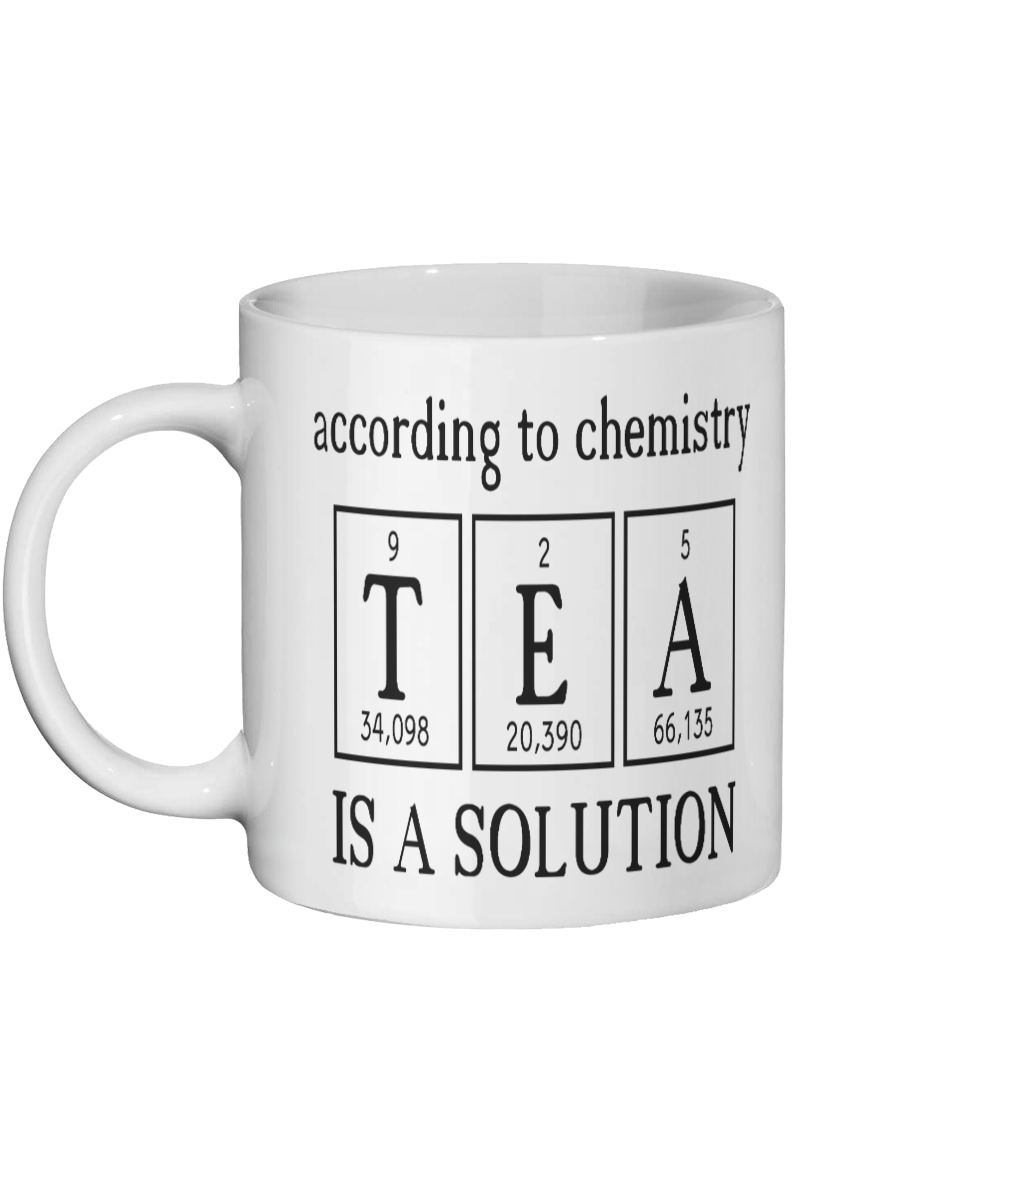 [personalised_mug]Personalised Coffee Mug/Tea Mug -Tea Is A Solution - status mugs